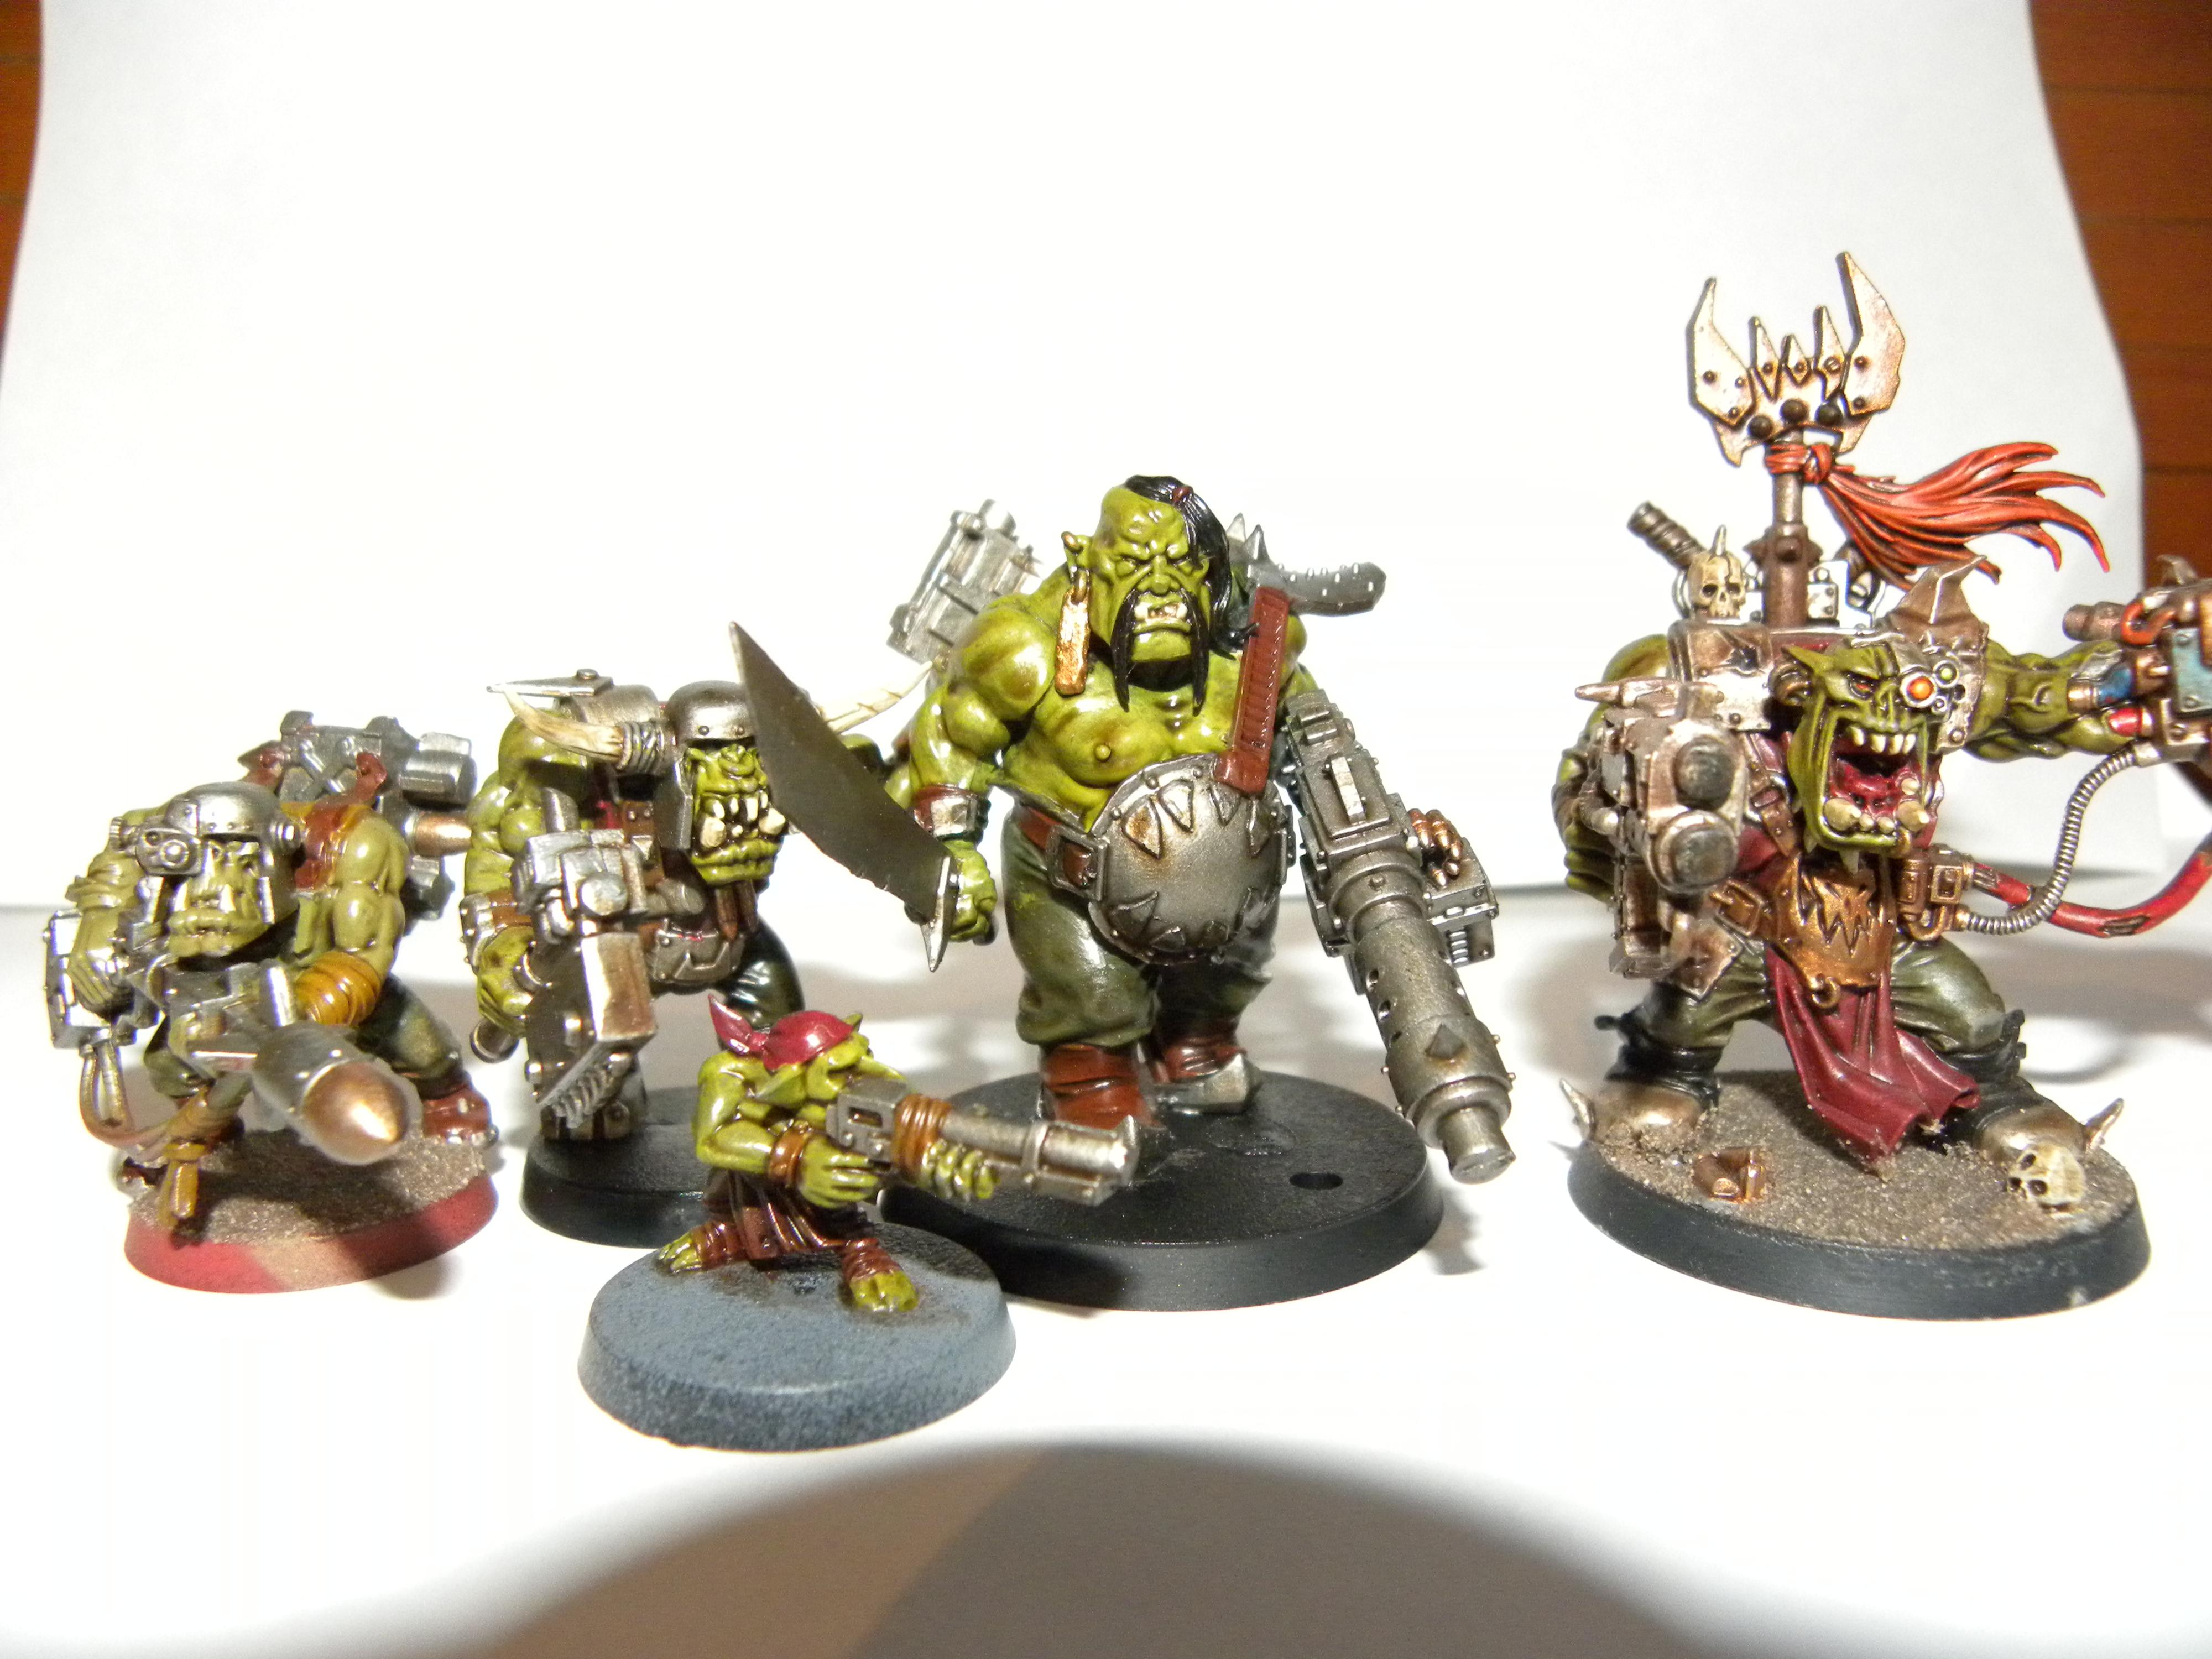 size comparison with other Orks